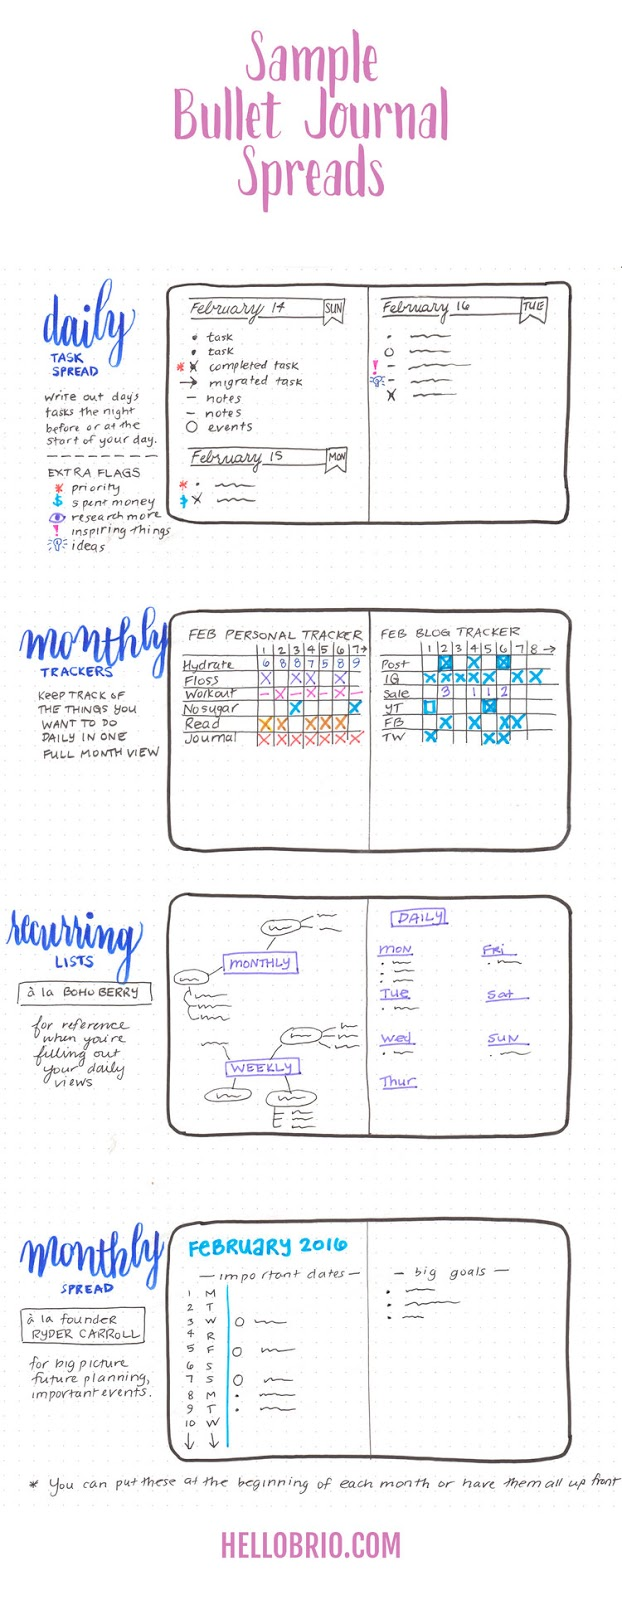 Samples of bullet journal spreads. Lots of good tips for getting started.